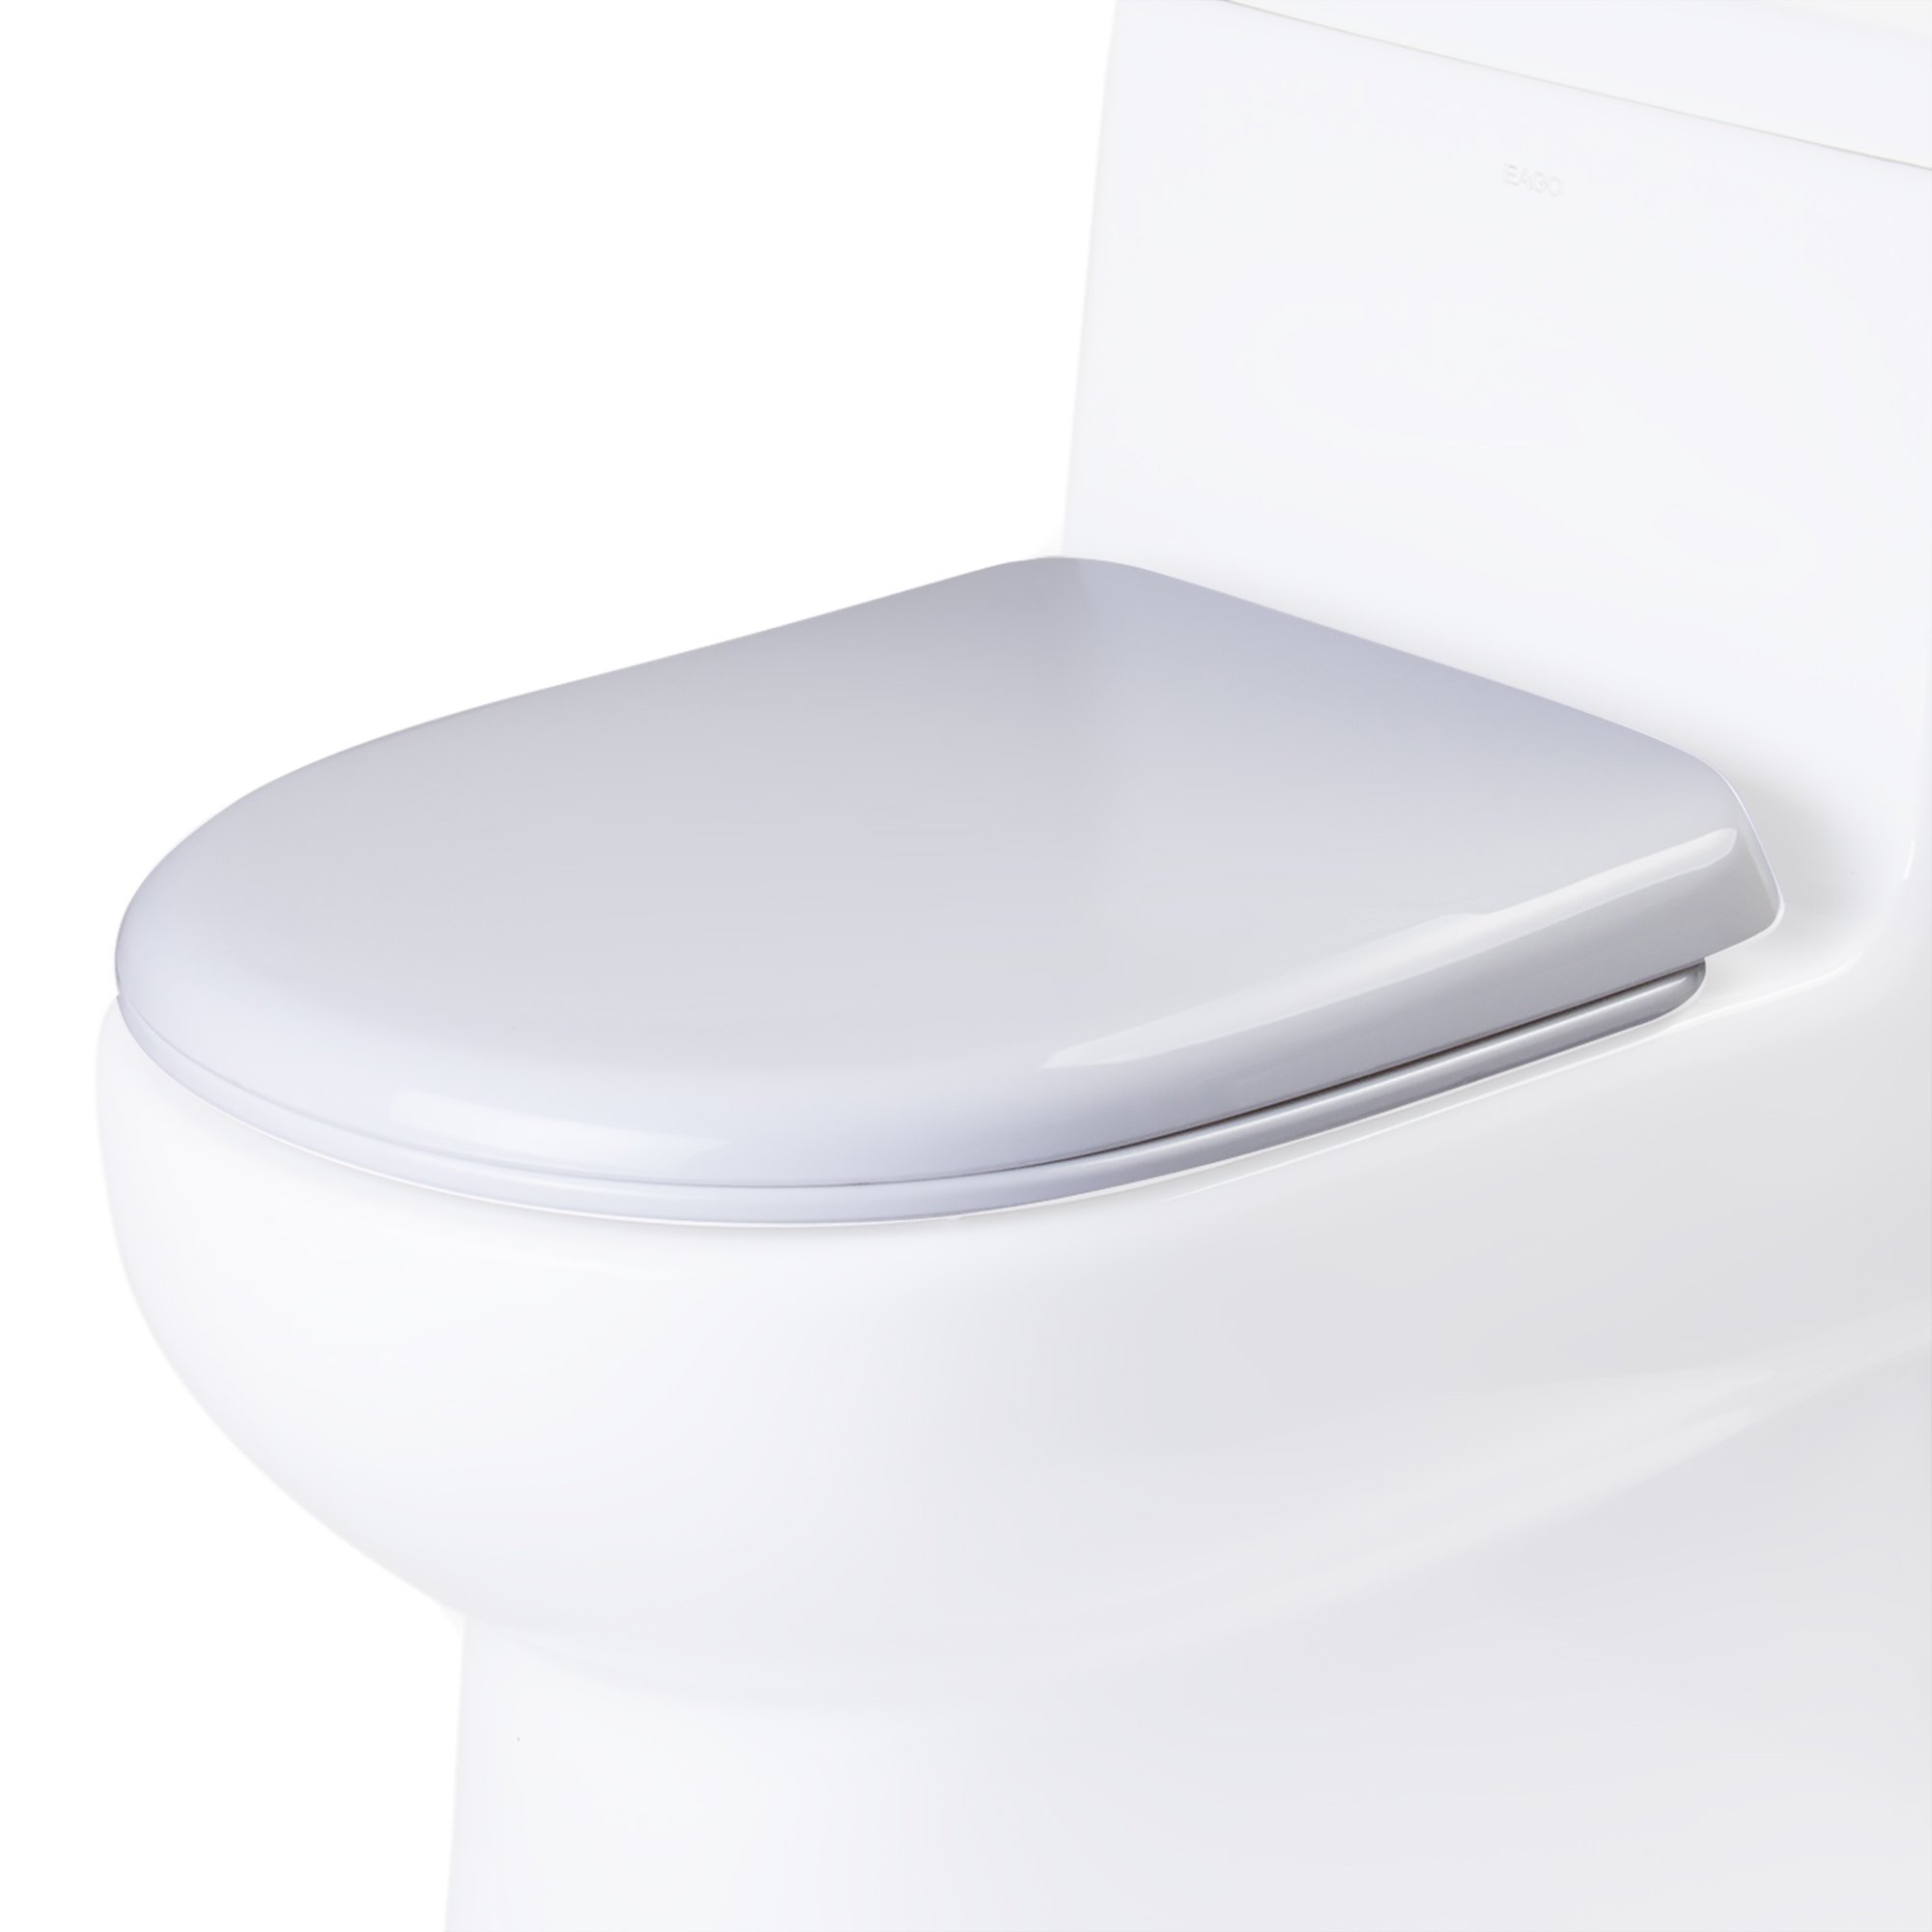 EAGO R-351SEAT Replacement Soft Closing Toilet Seat for TB351